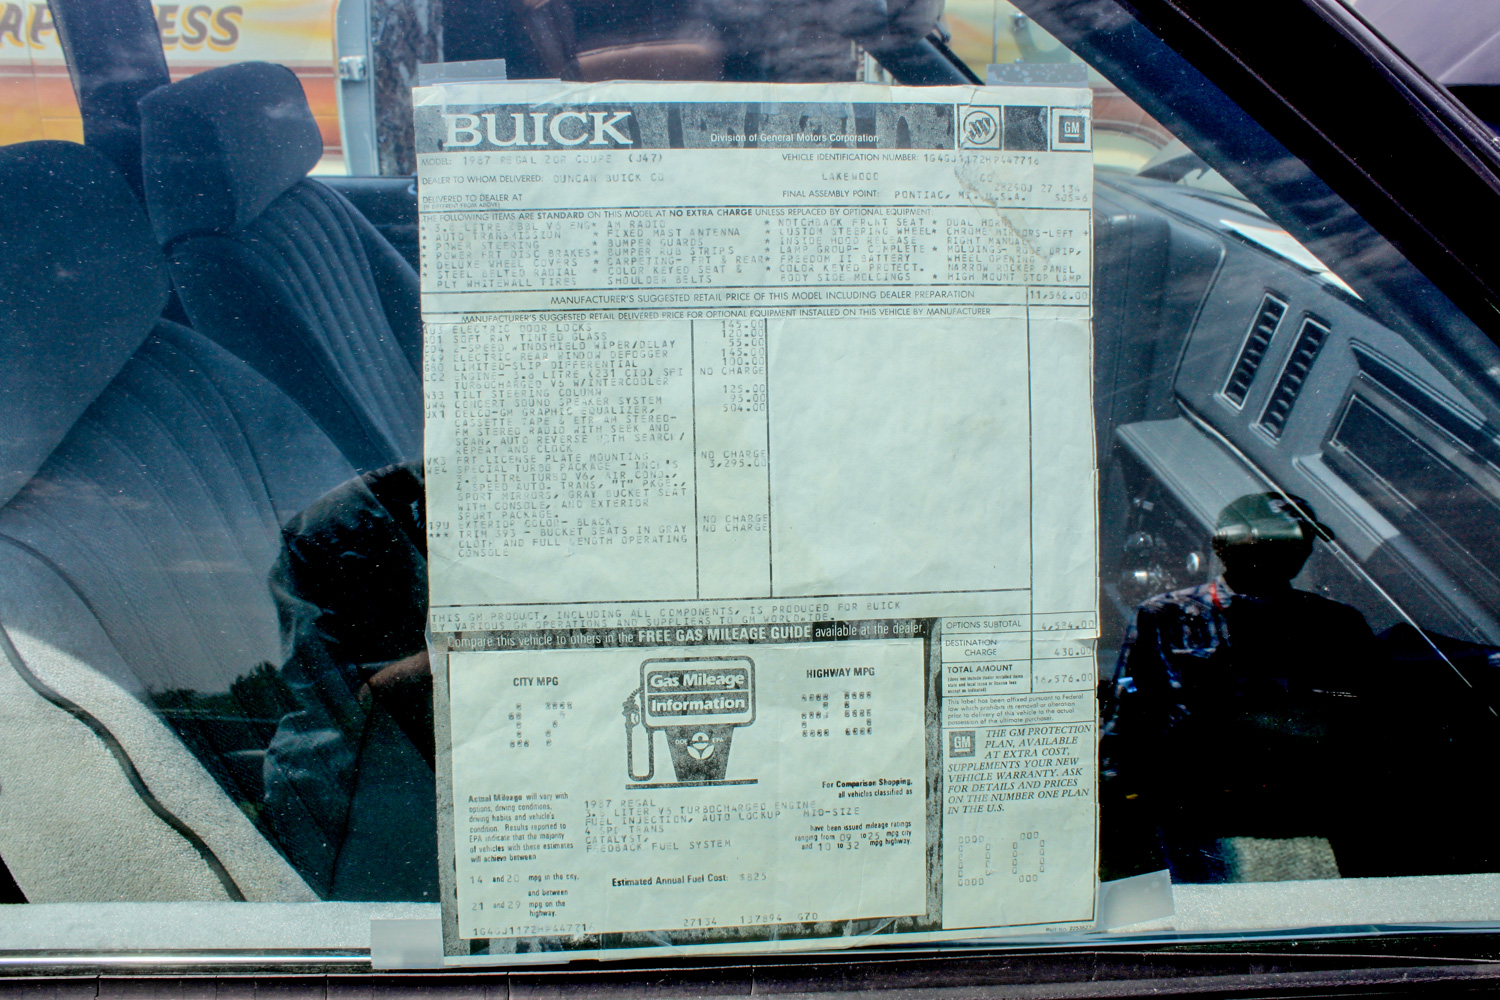 1987 Buick turbo-T window Sticker